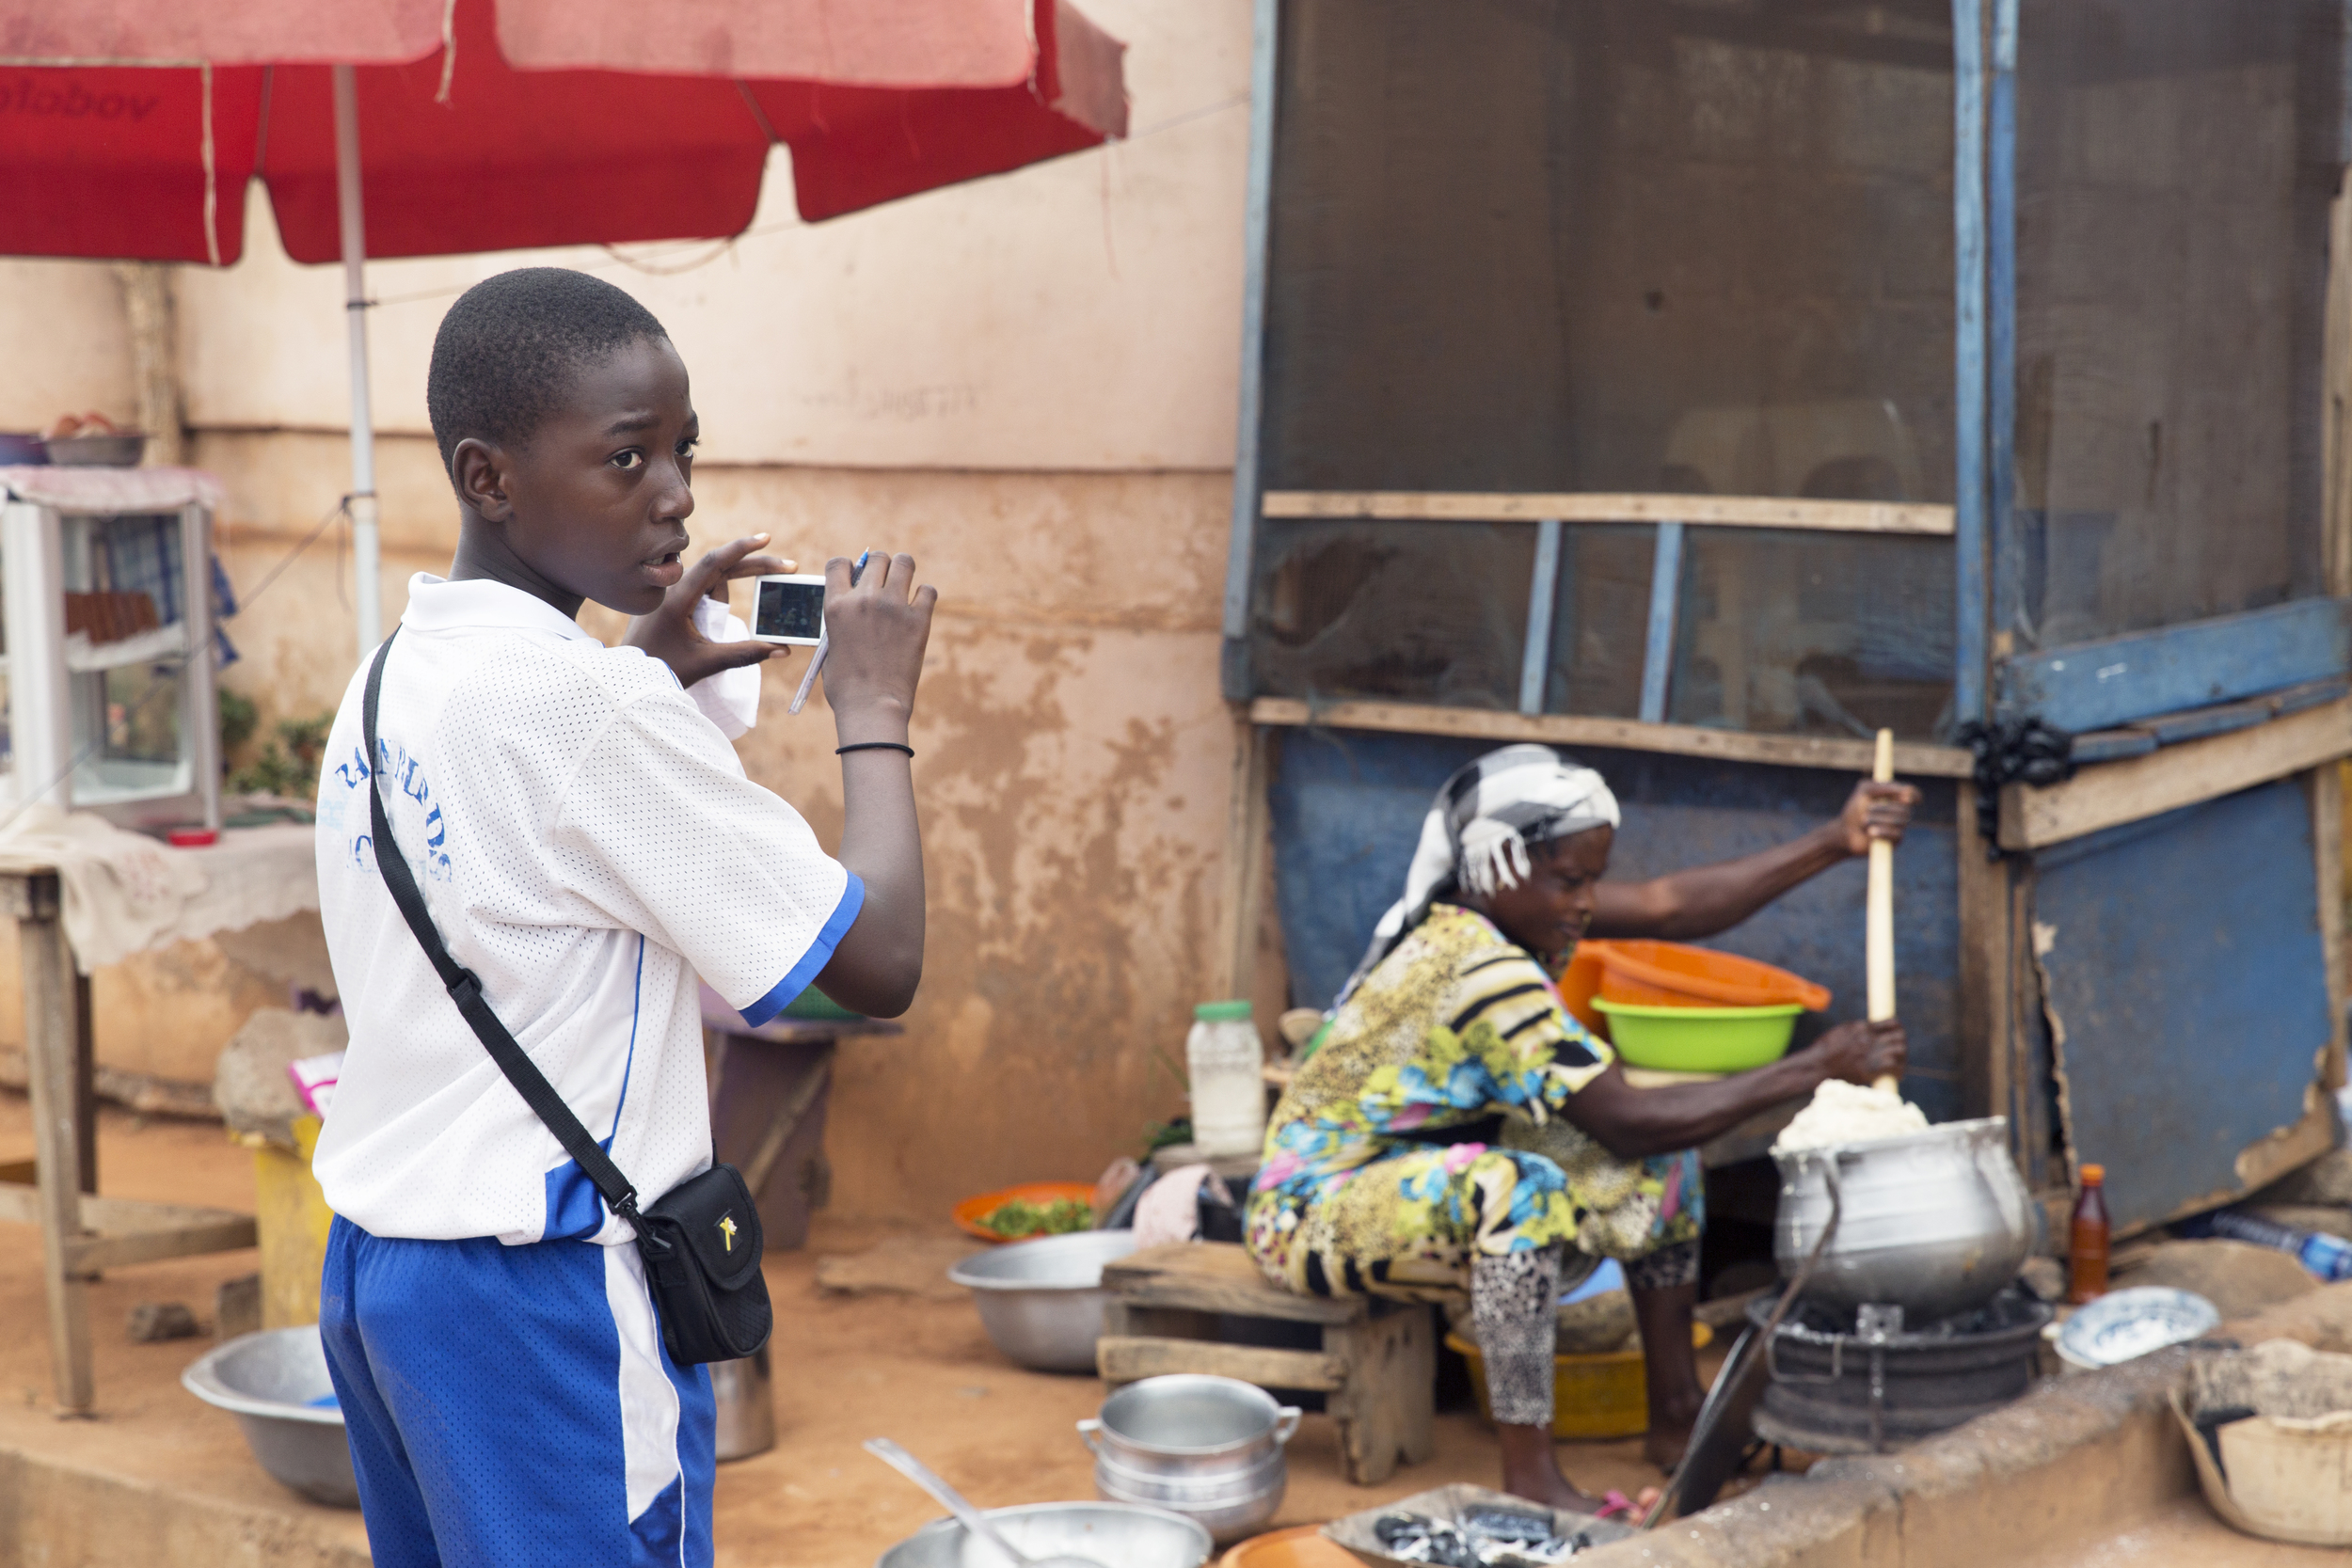 Hakeem photographs a woman making banku across from the school.